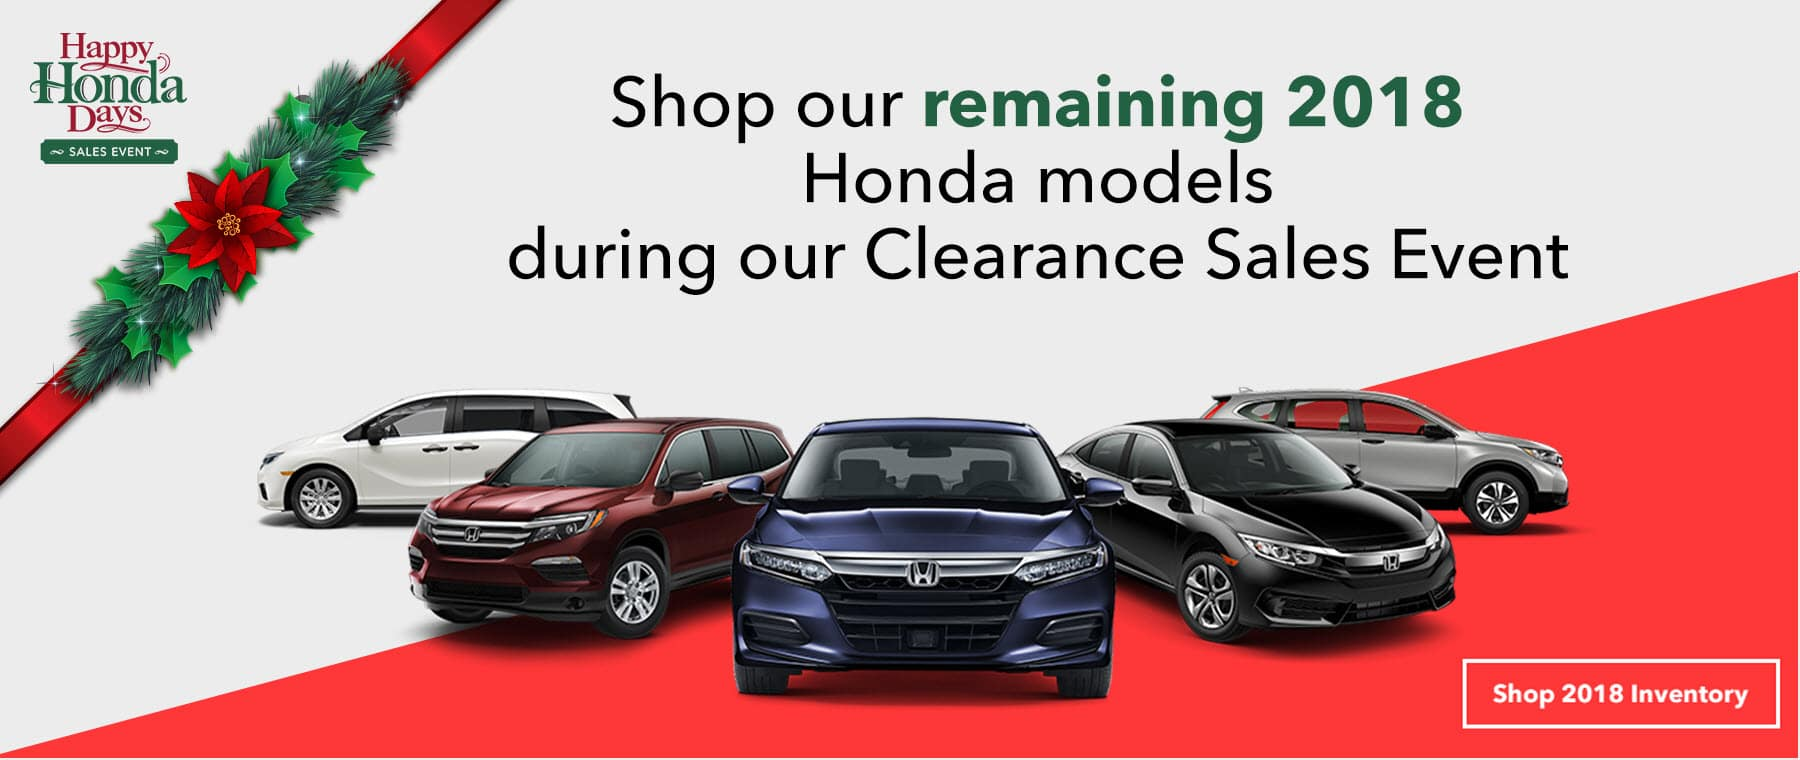 2018 Honda Clearance Event Slide